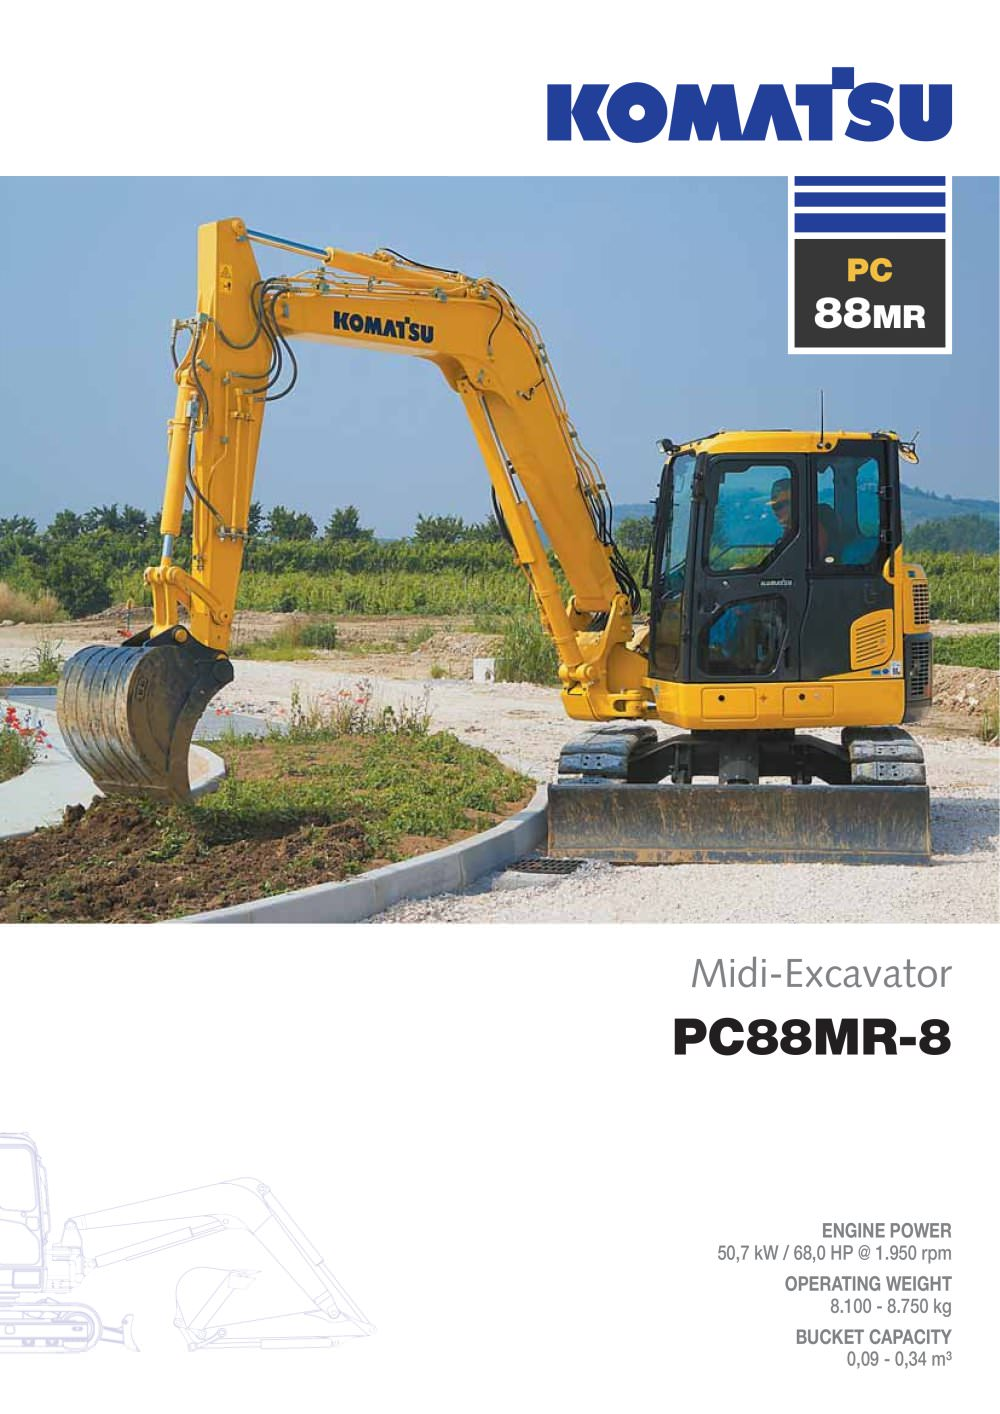 Wiring Diagram Komatsu Ck 30 Trusted Diagrams Excavators Pc88mr 8 Construction And Mining Equipment Pdf Catalogue Dump Truck Hydraulics